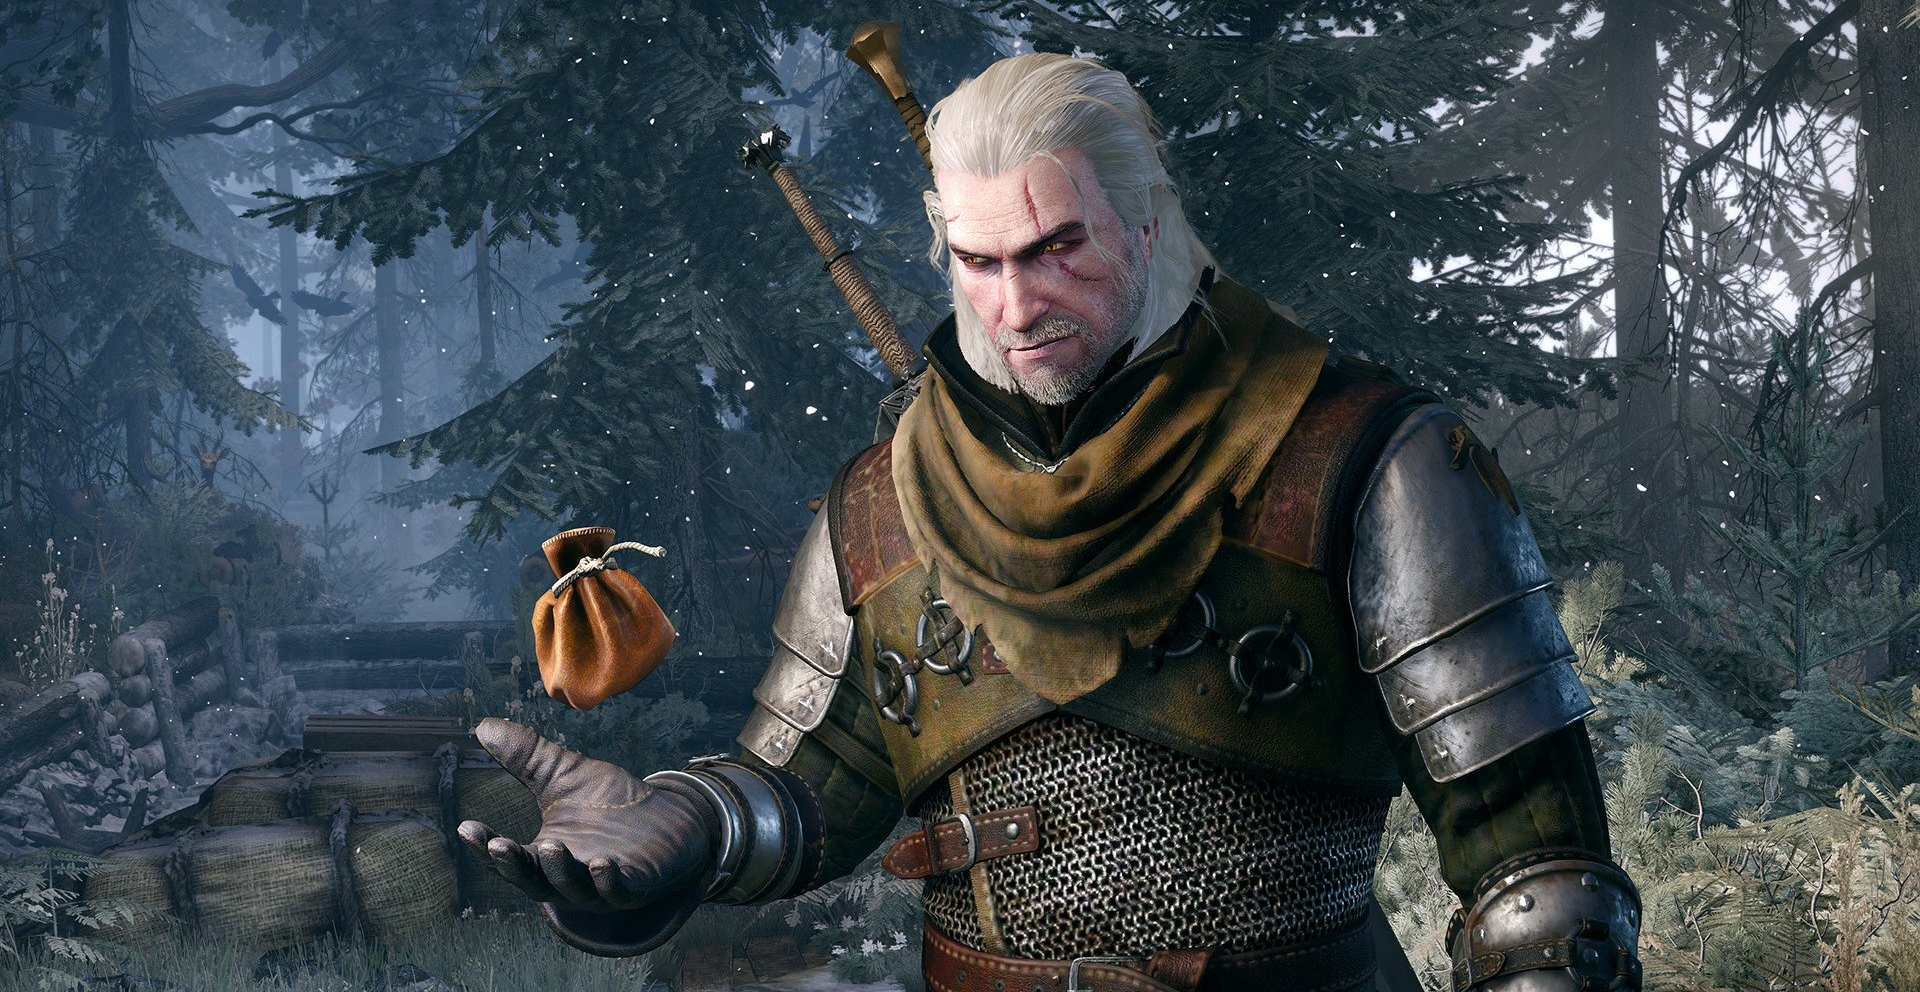 224610-The%20Witcher.jpg